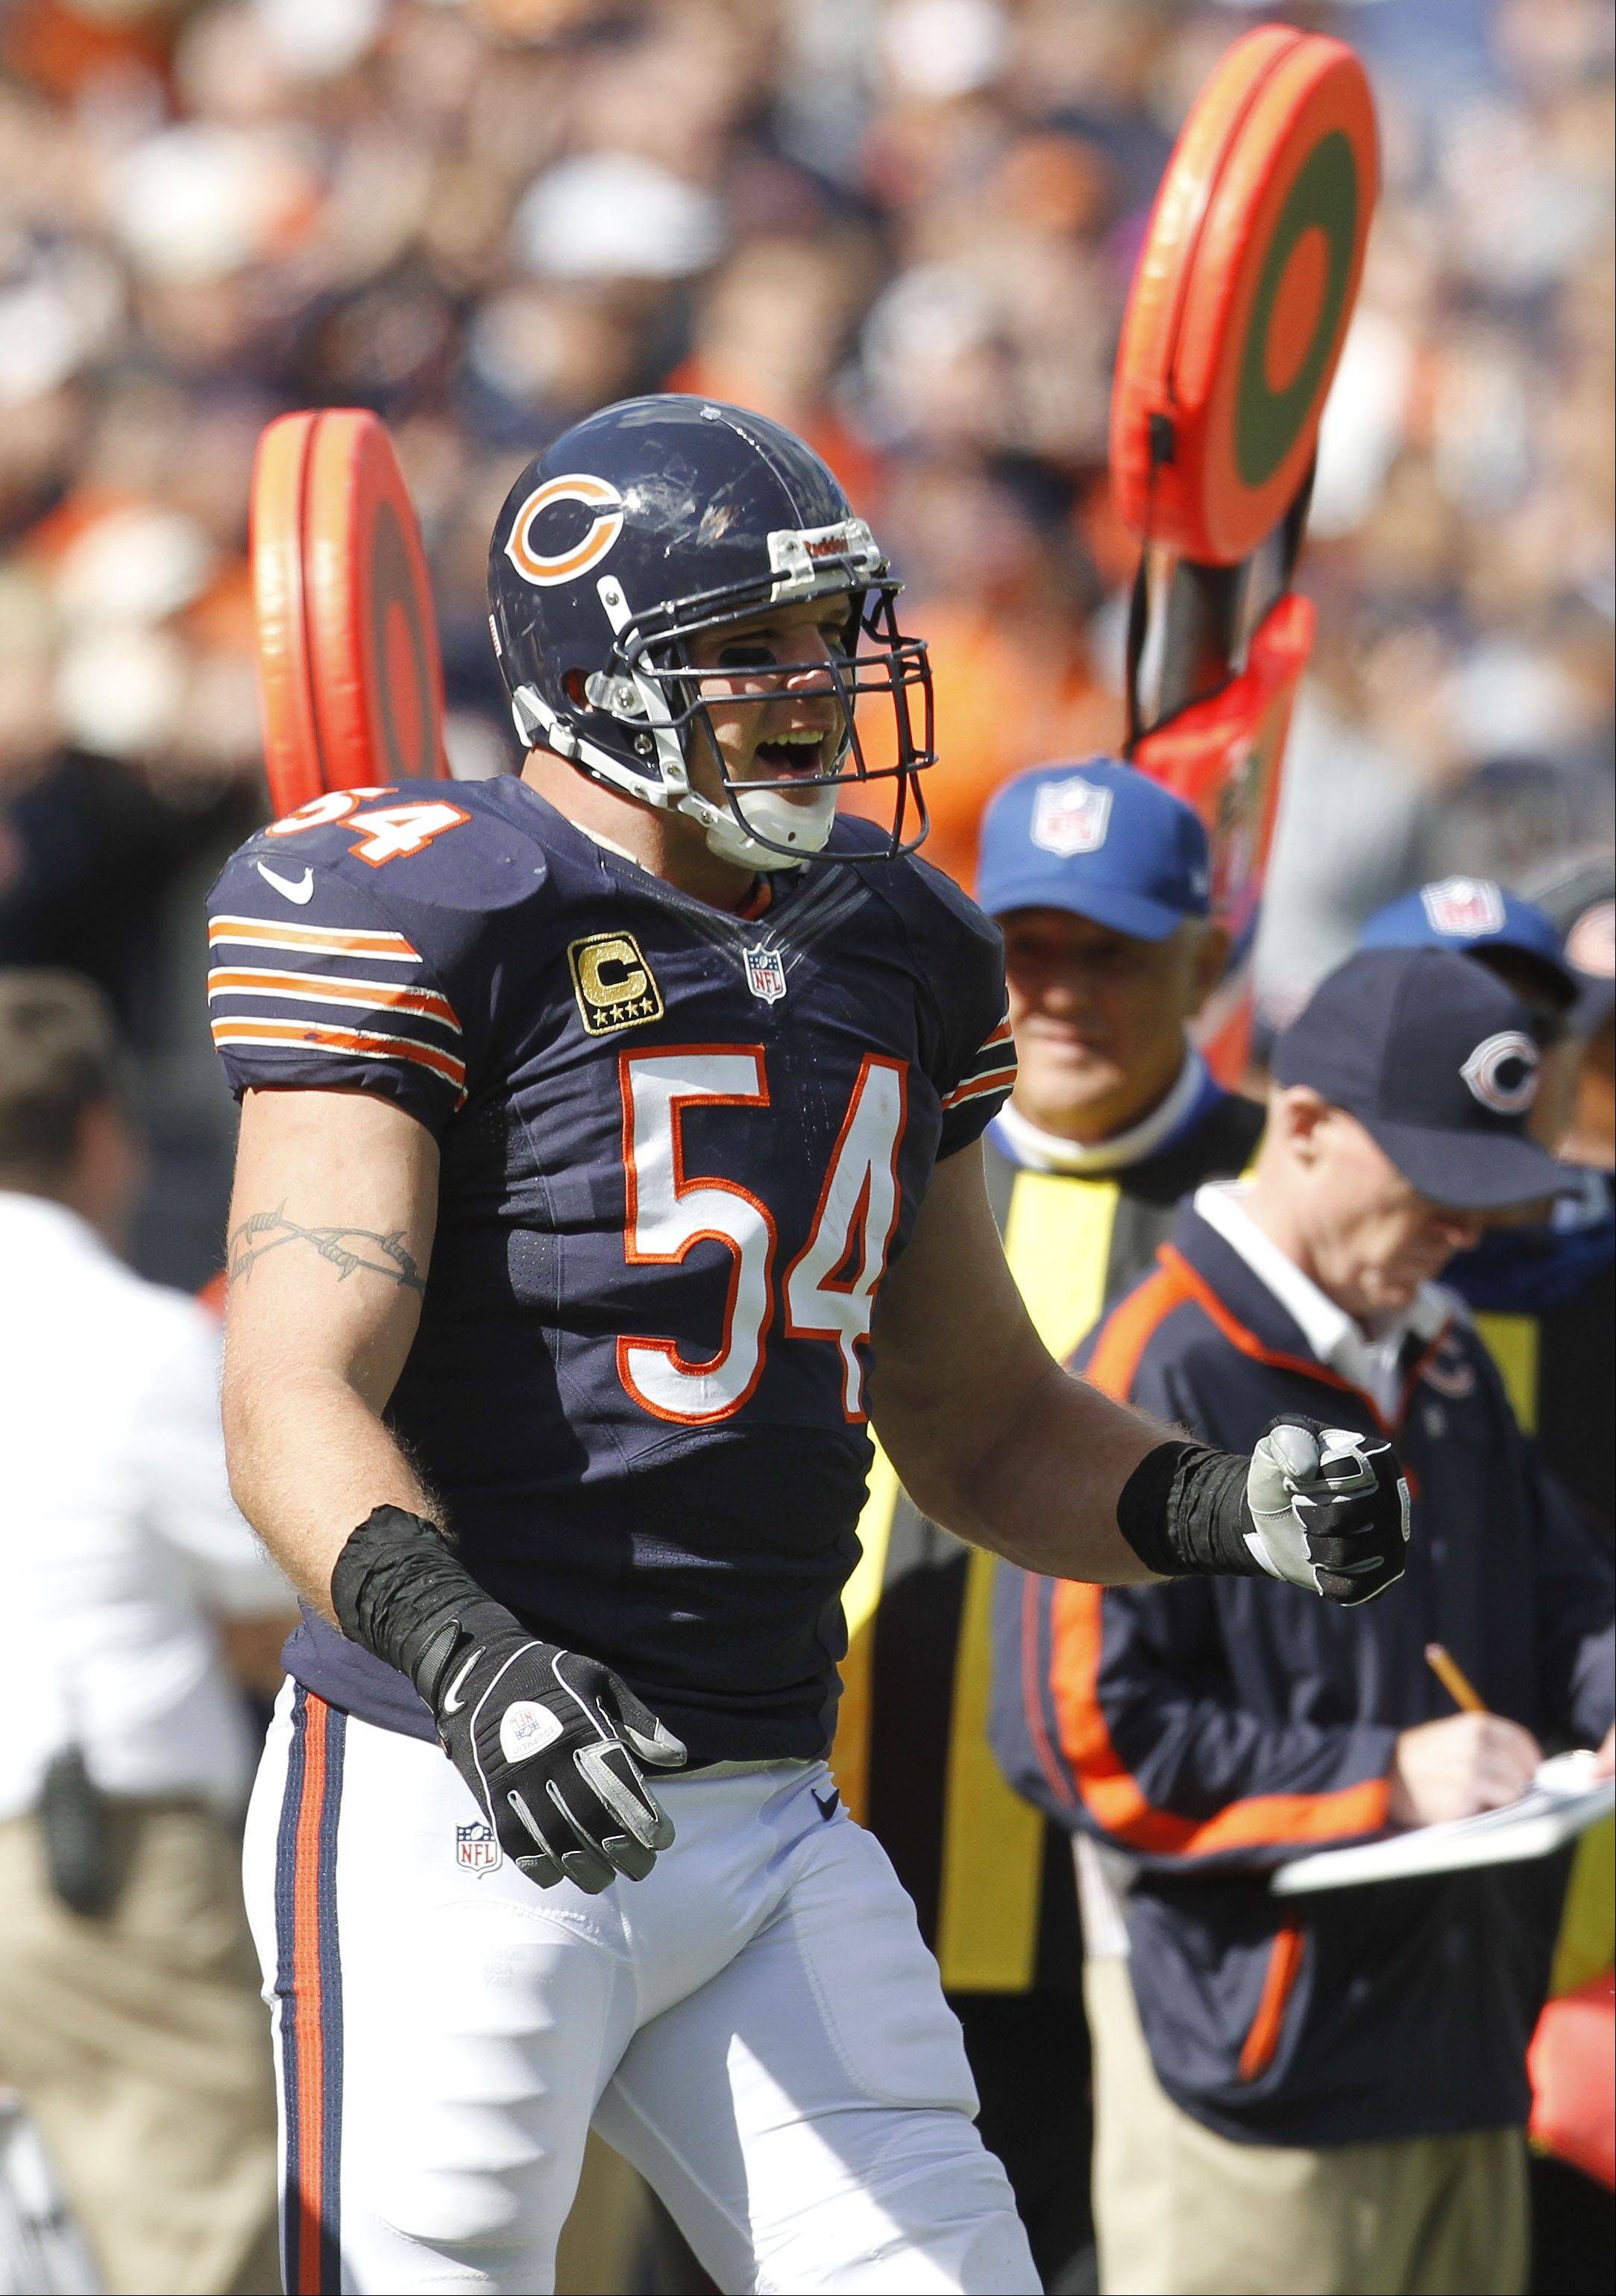 Chicago Bears linebacker Brian Urlacher celebrates after Major Wright's pick 6 during the Bears 23-6 win over the St. Louis Rams Sunday at Soldier Field in Chicago.